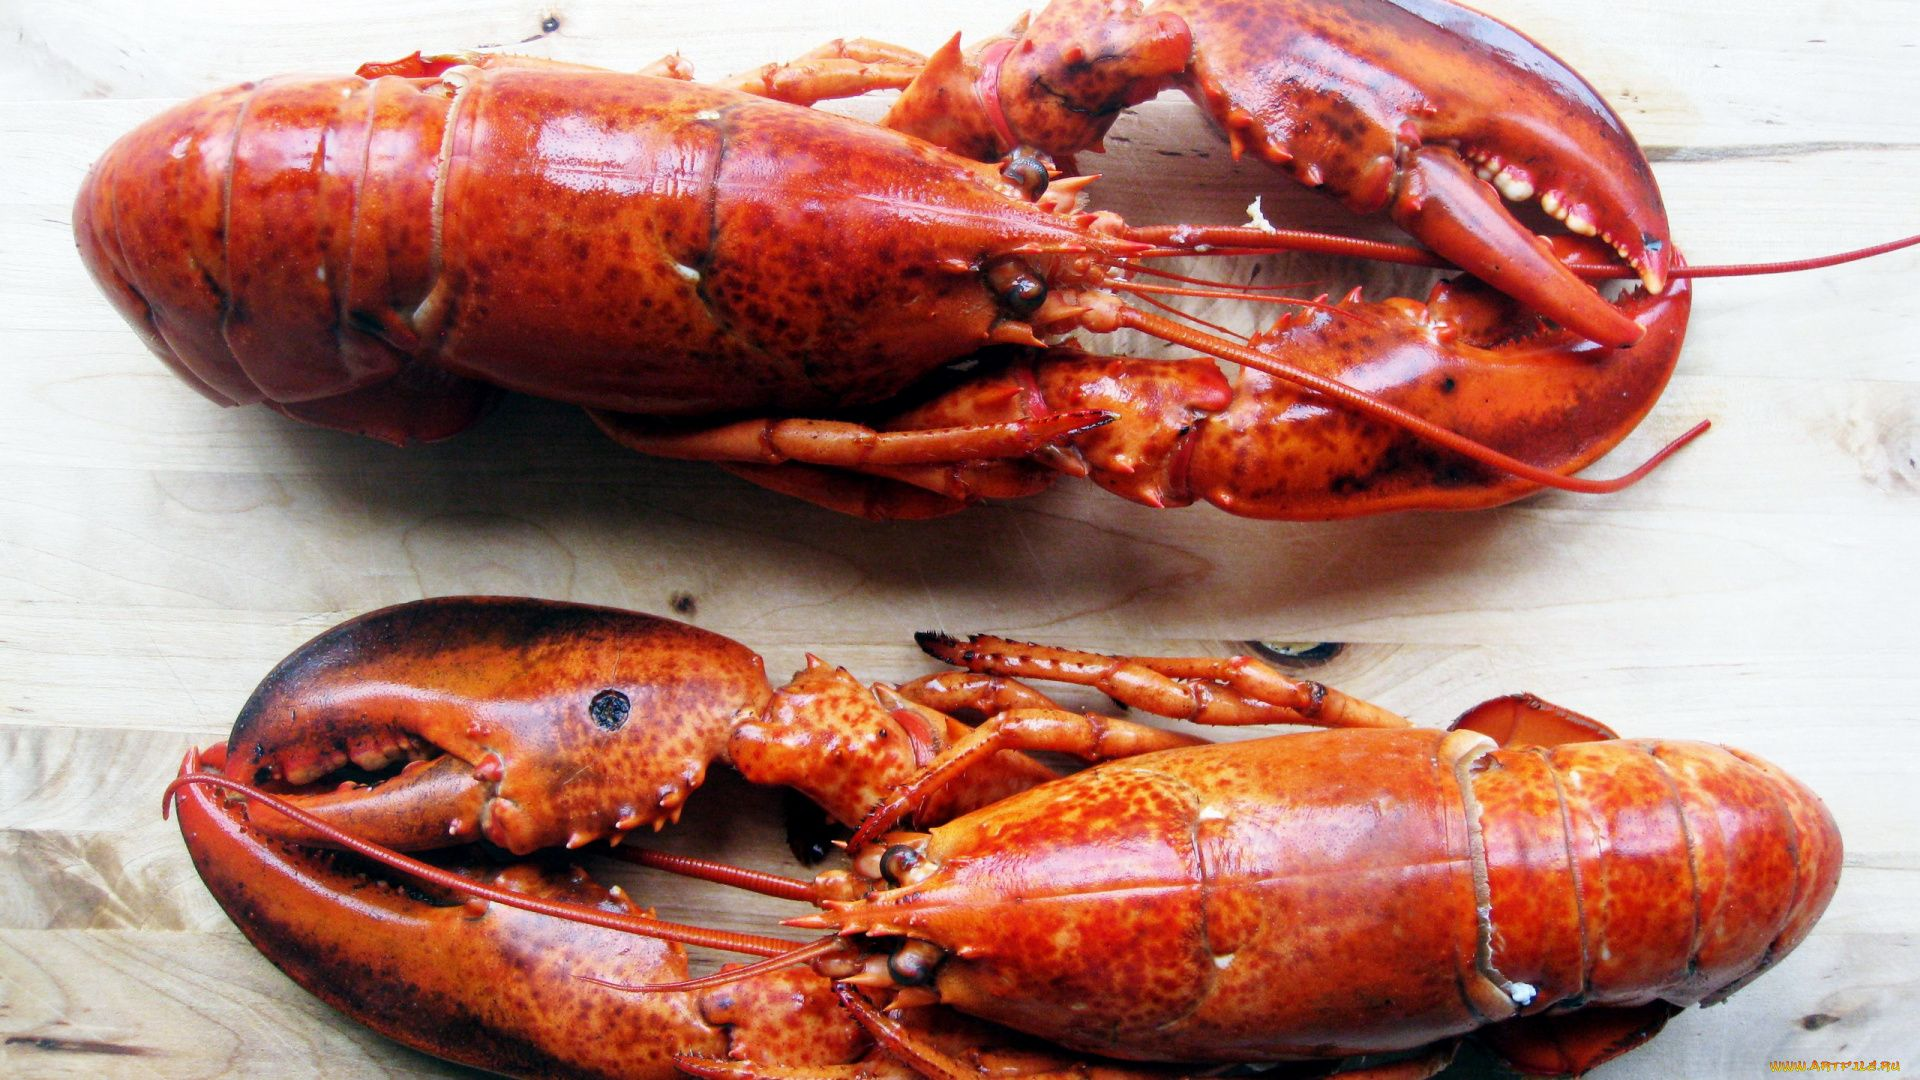 Lobster download nice wallpaper